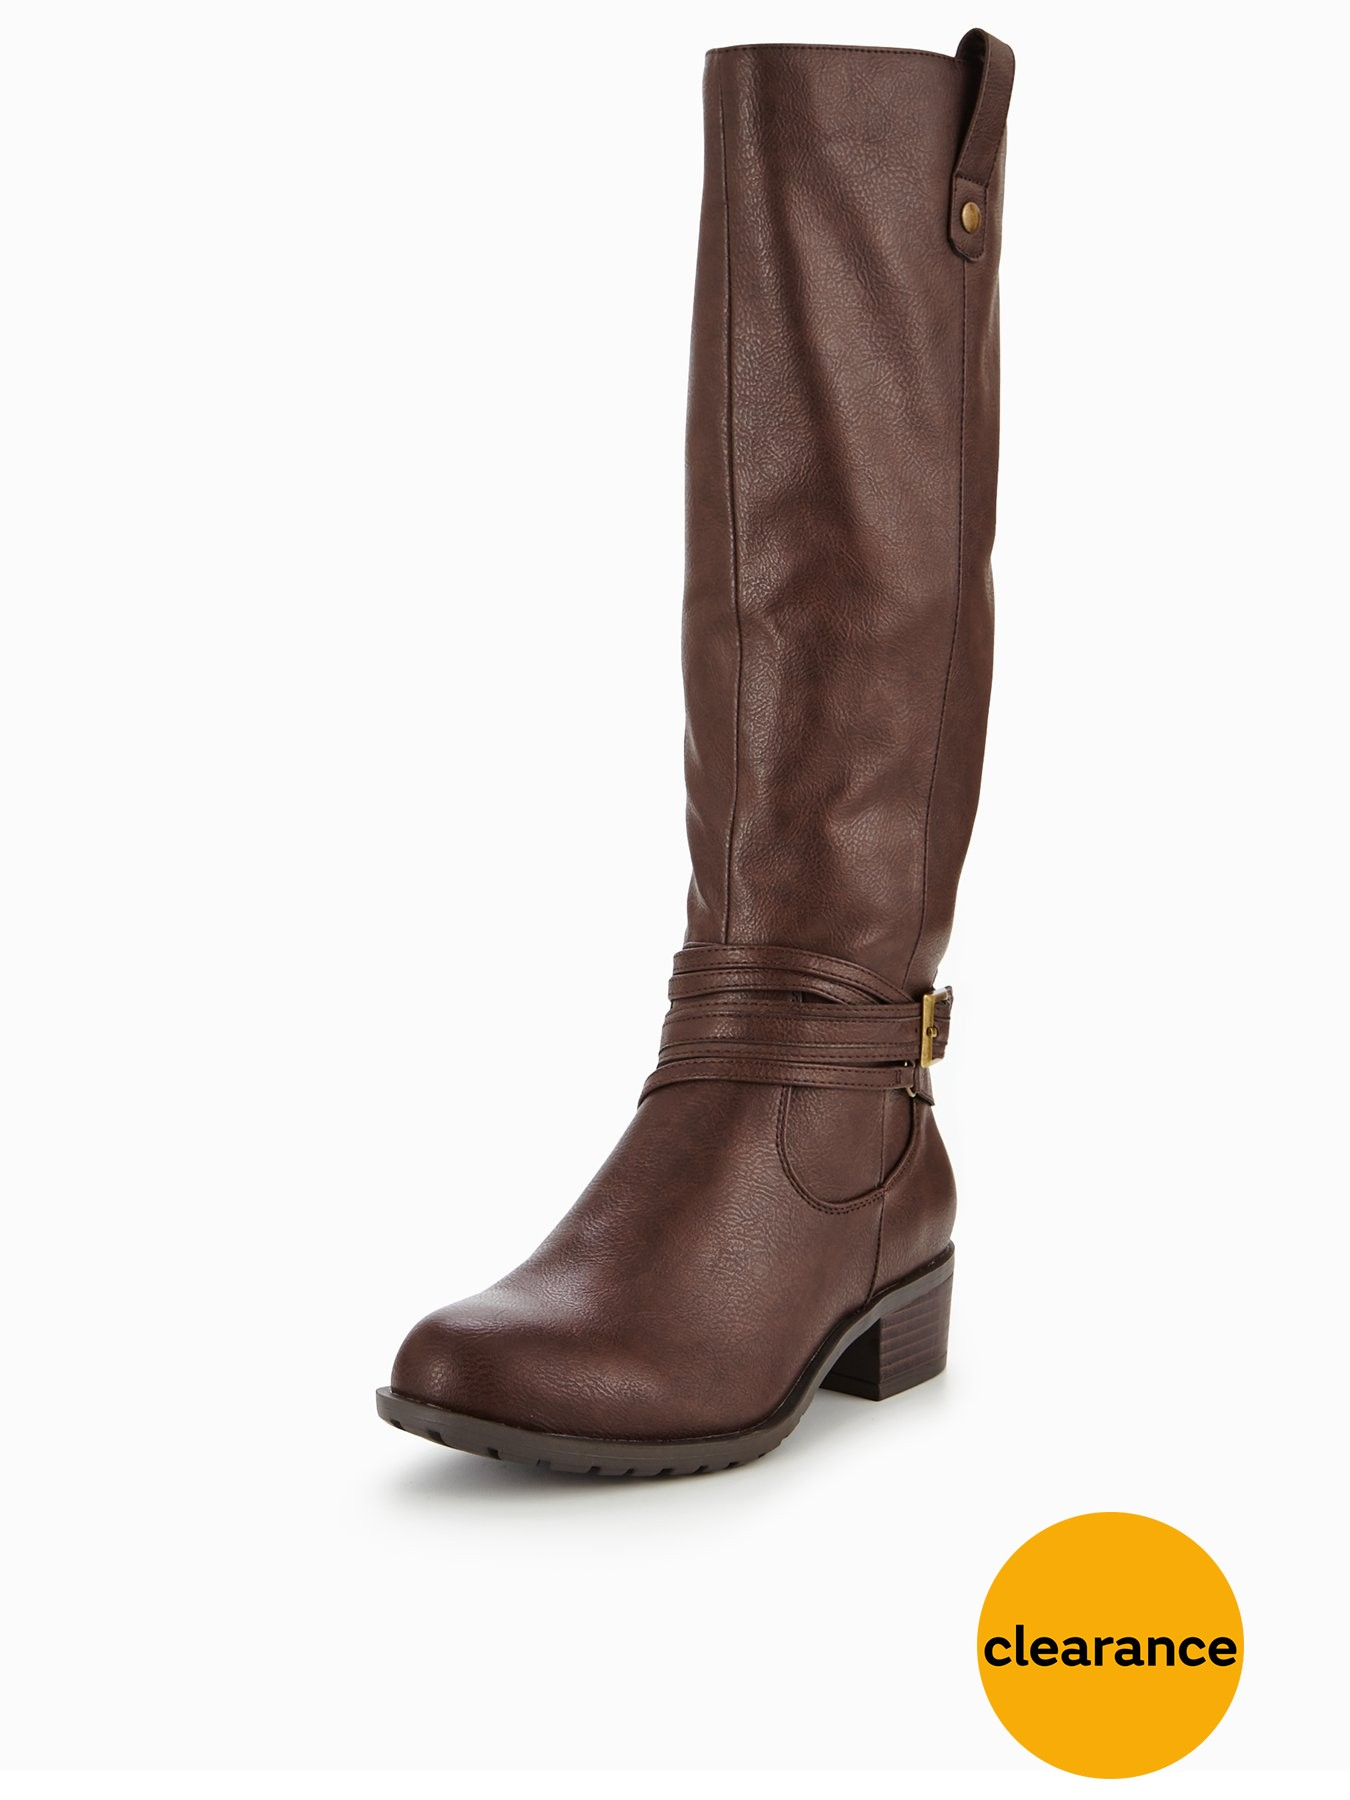 V by Very Anchor Block Heel Strap Knee High Boot Brown 1600182080 Women's Shoes V by Very Boots